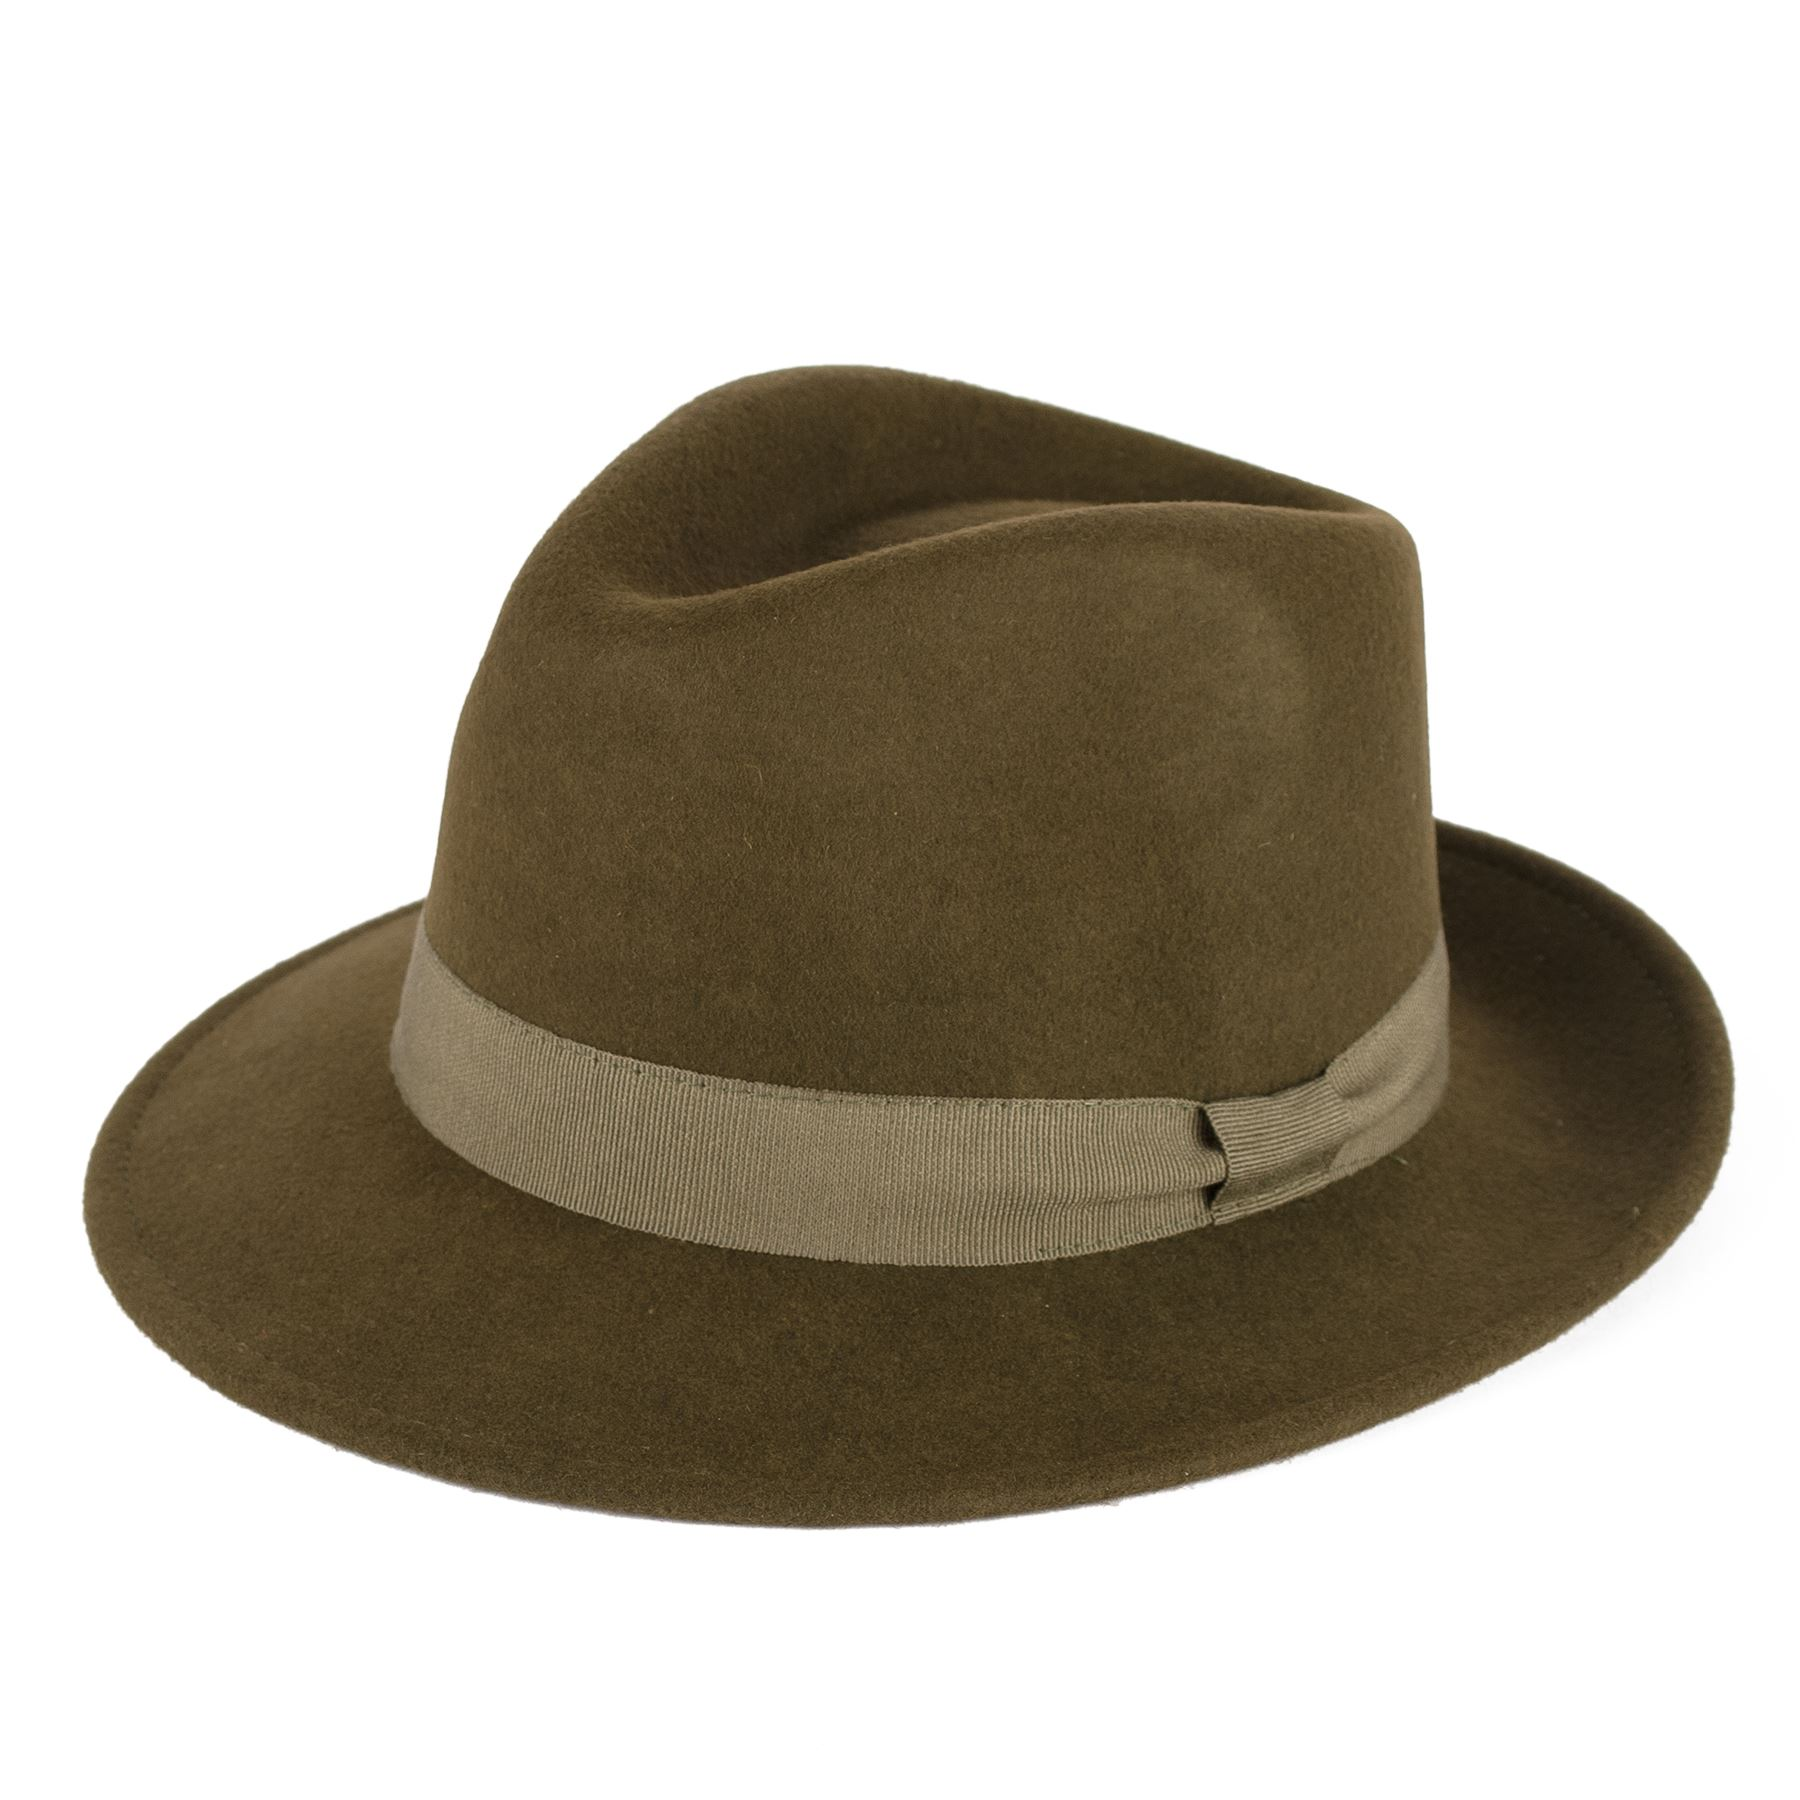 Components of men's fedoras. These men's hats may differ somewhat in size and style, but they all share the same basic construction. When shopping for a men's fedora, the important things to look at include its materials, brim, and accents.